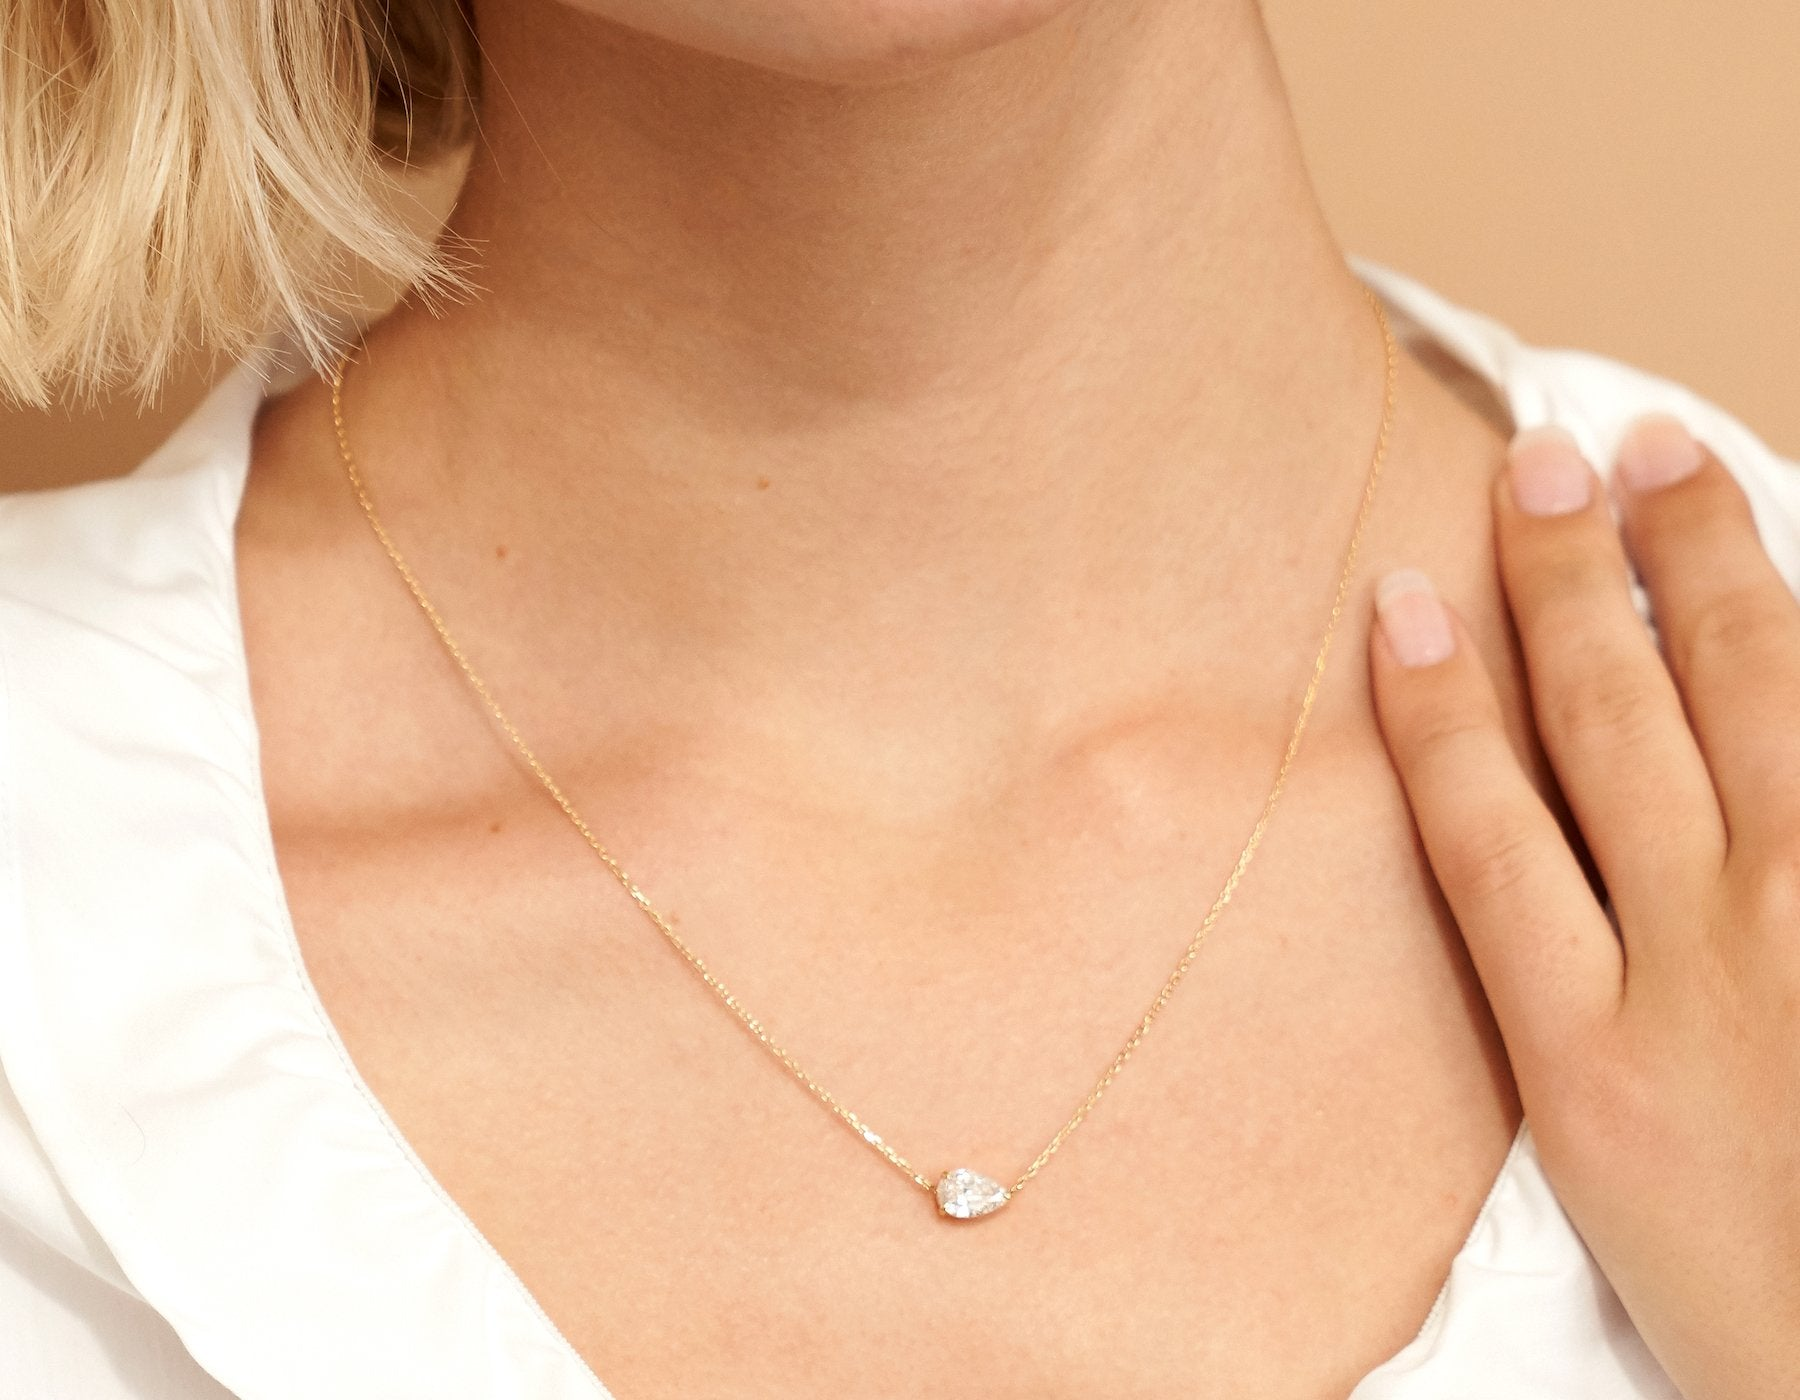 Model wearing Vrai 14K solid gold solitaire pear diamond necklace 1ct minimalist delicate, 14K Rose Gold